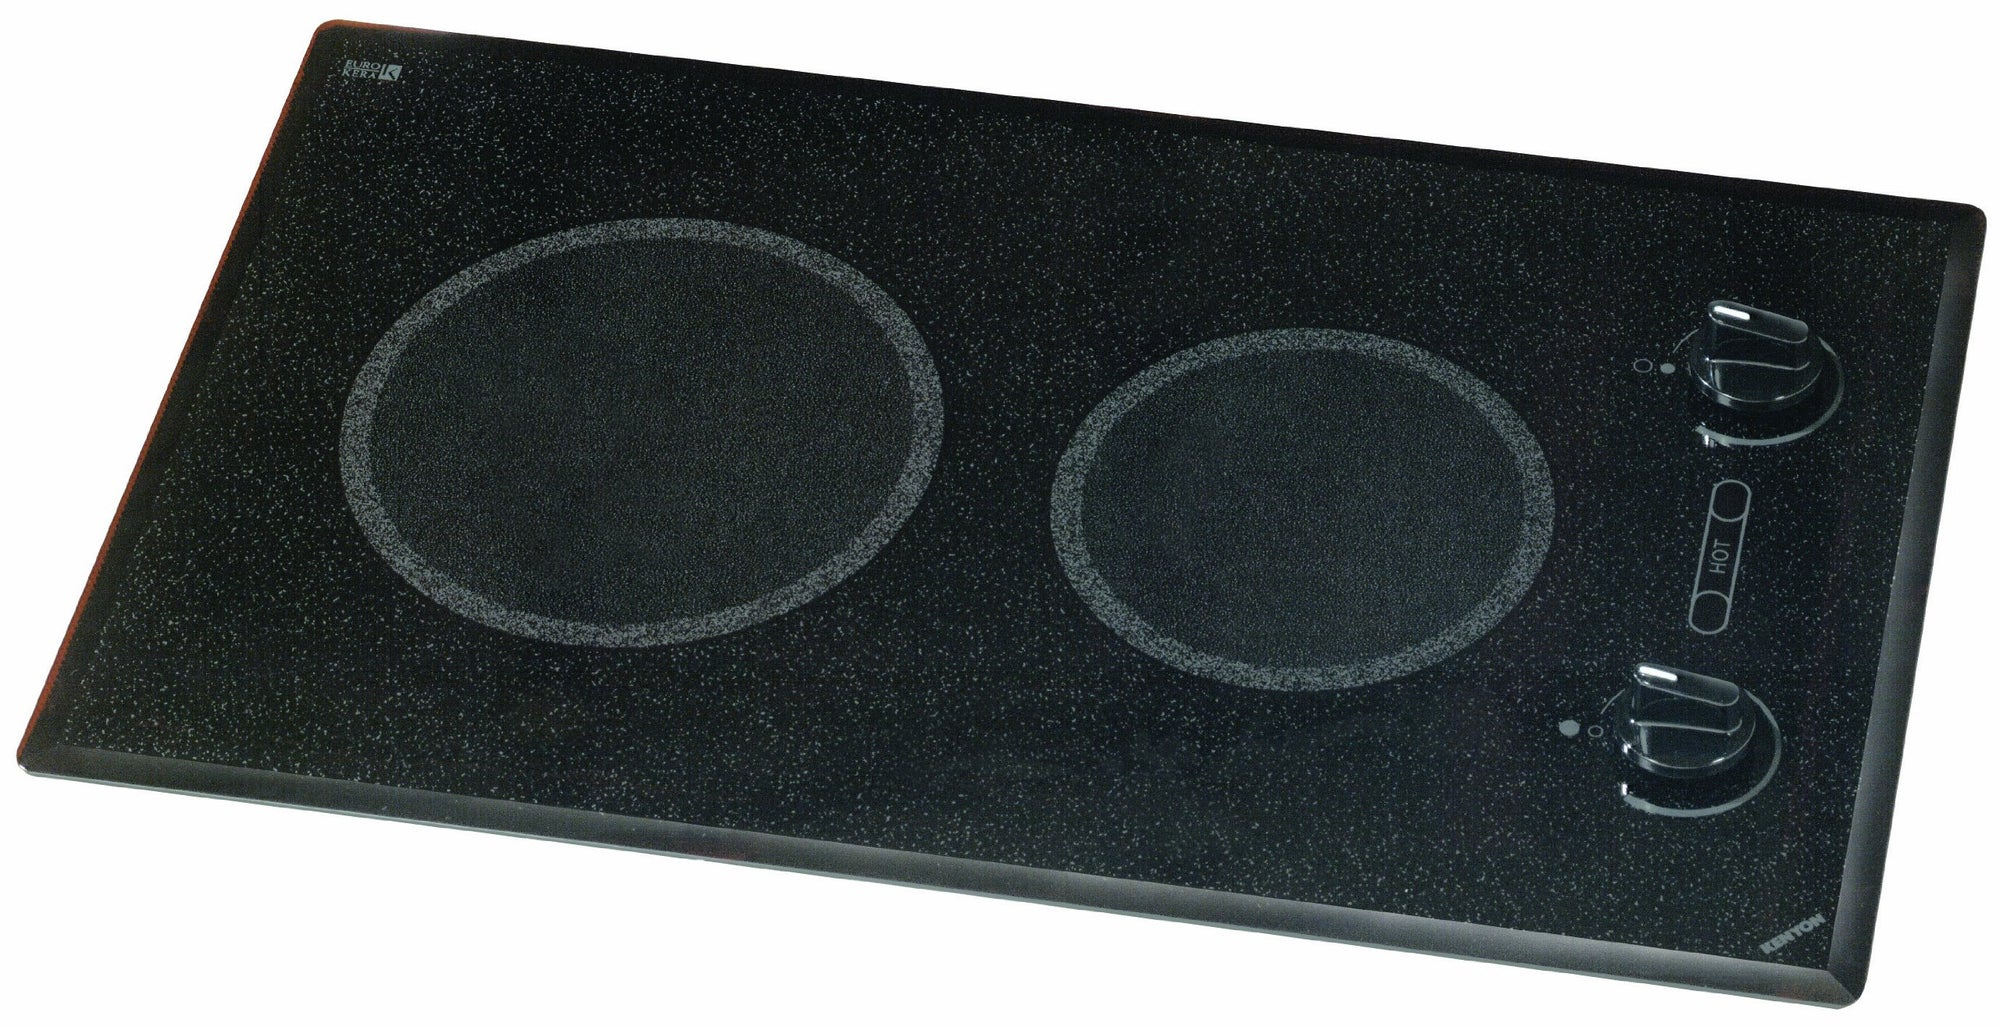 Kenyon B41511 6-1/2 and 8-Inch Mediterranean 2-Burner Cooktop with Analog Control UL, 240-volt, Black